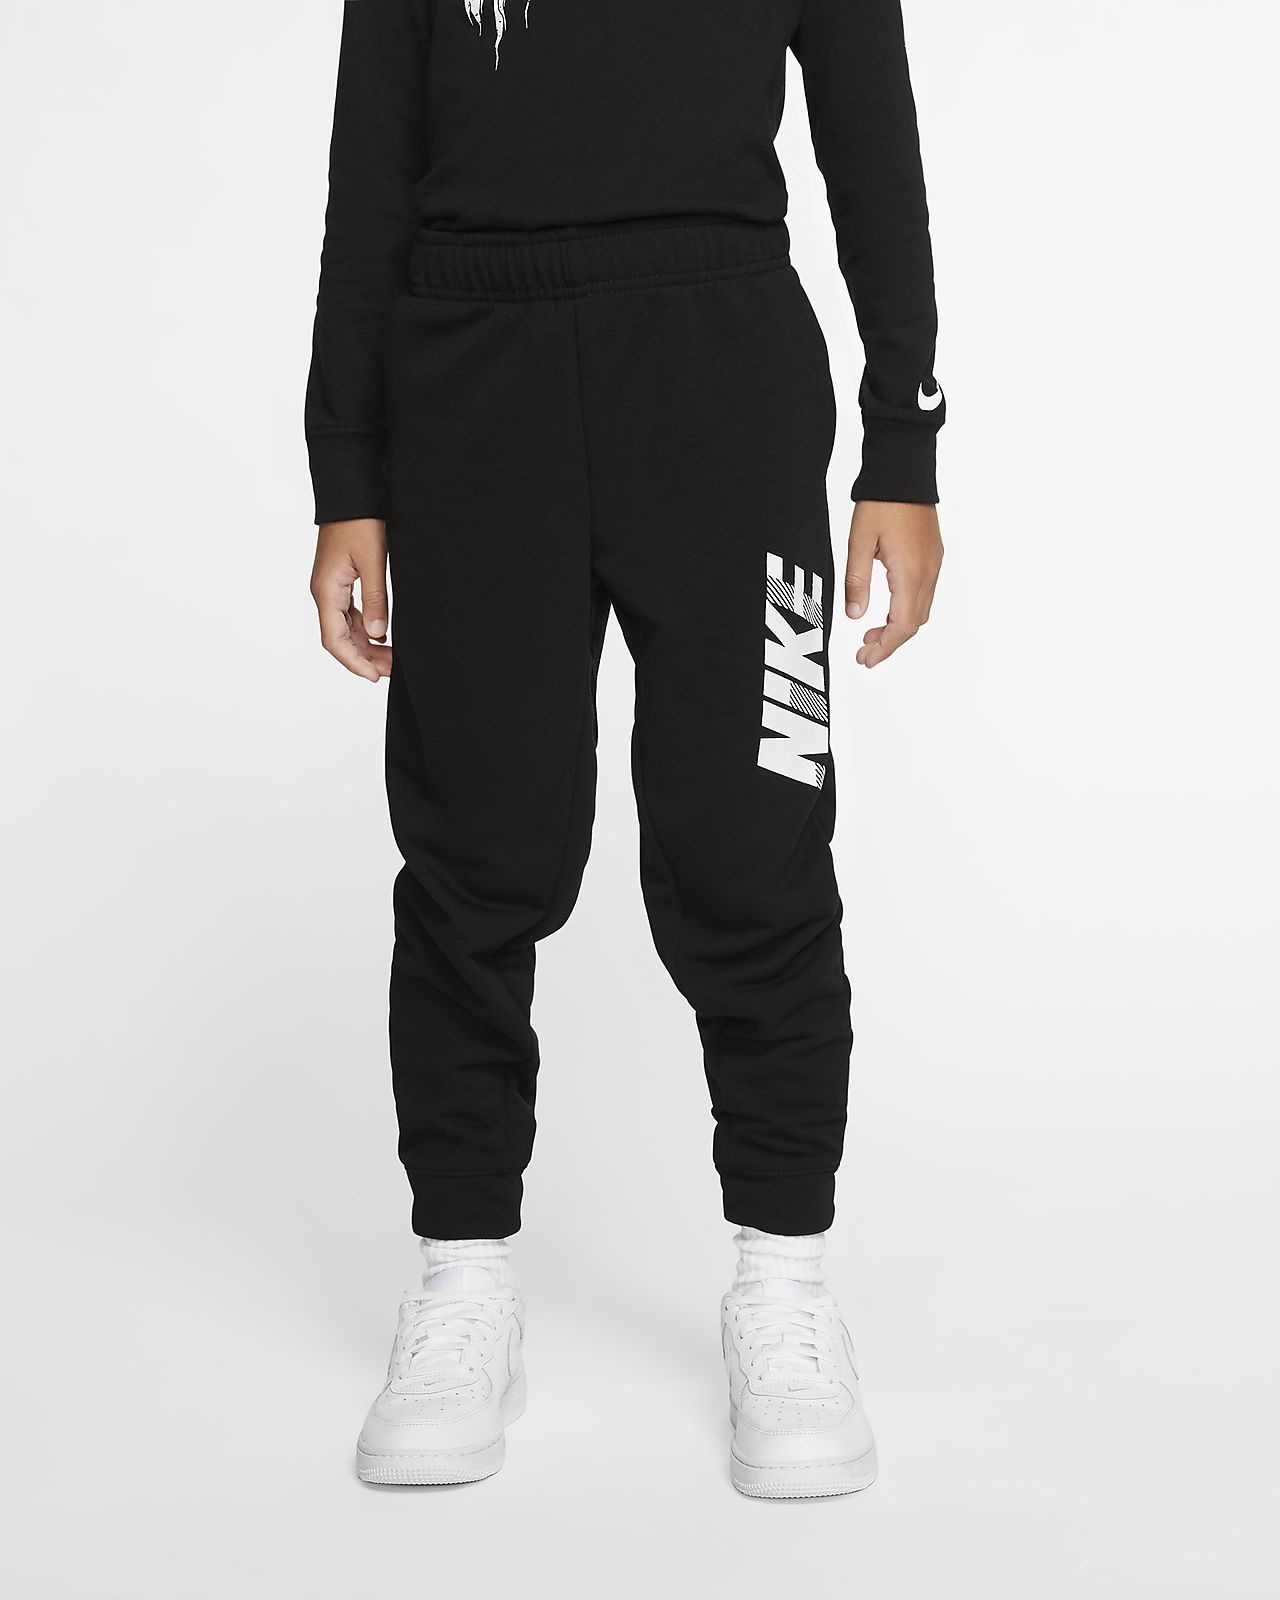 Nike Dri-FIT Little Kids' Cuffed Pants